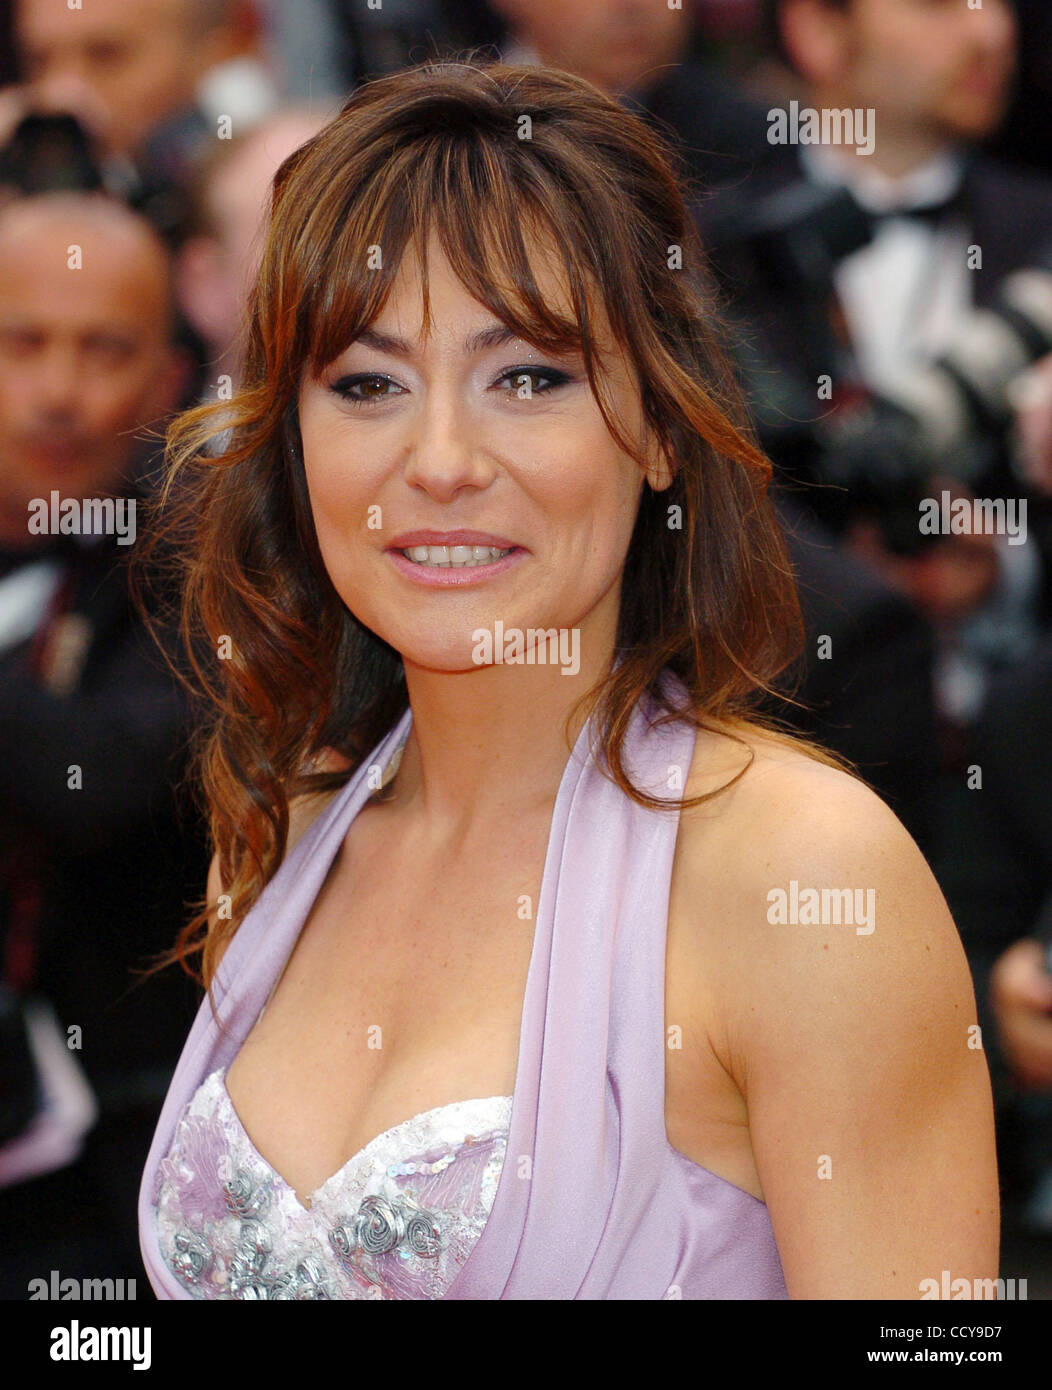 TheFappening Shirley Bousquet naked (27 photo), Sexy, Cleavage, Boobs, swimsuit 2020